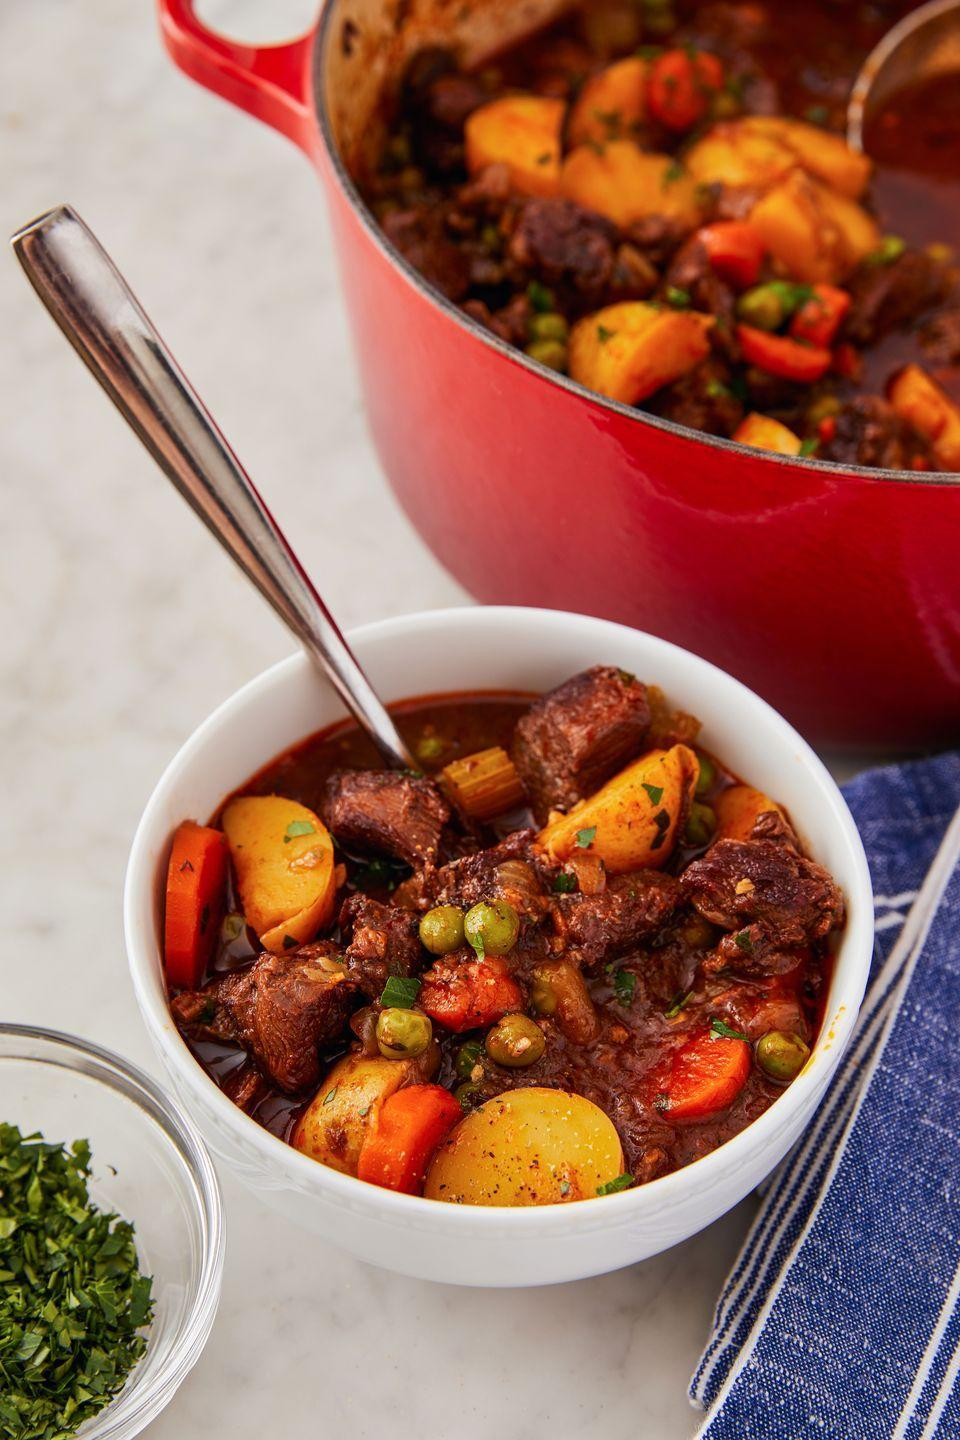 "<p>The classic stew your winter recipe lineup needs. </p><p>Get the recipe from <a href=""https://www.delish.com/cooking/recipe-ideas/a23515497/easy-beef-stew-recipe/"" rel=""nofollow noopener"" target=""_blank"" data-ylk=""slk:Delish"" class=""link rapid-noclick-resp"">Delish</a>. </p>"